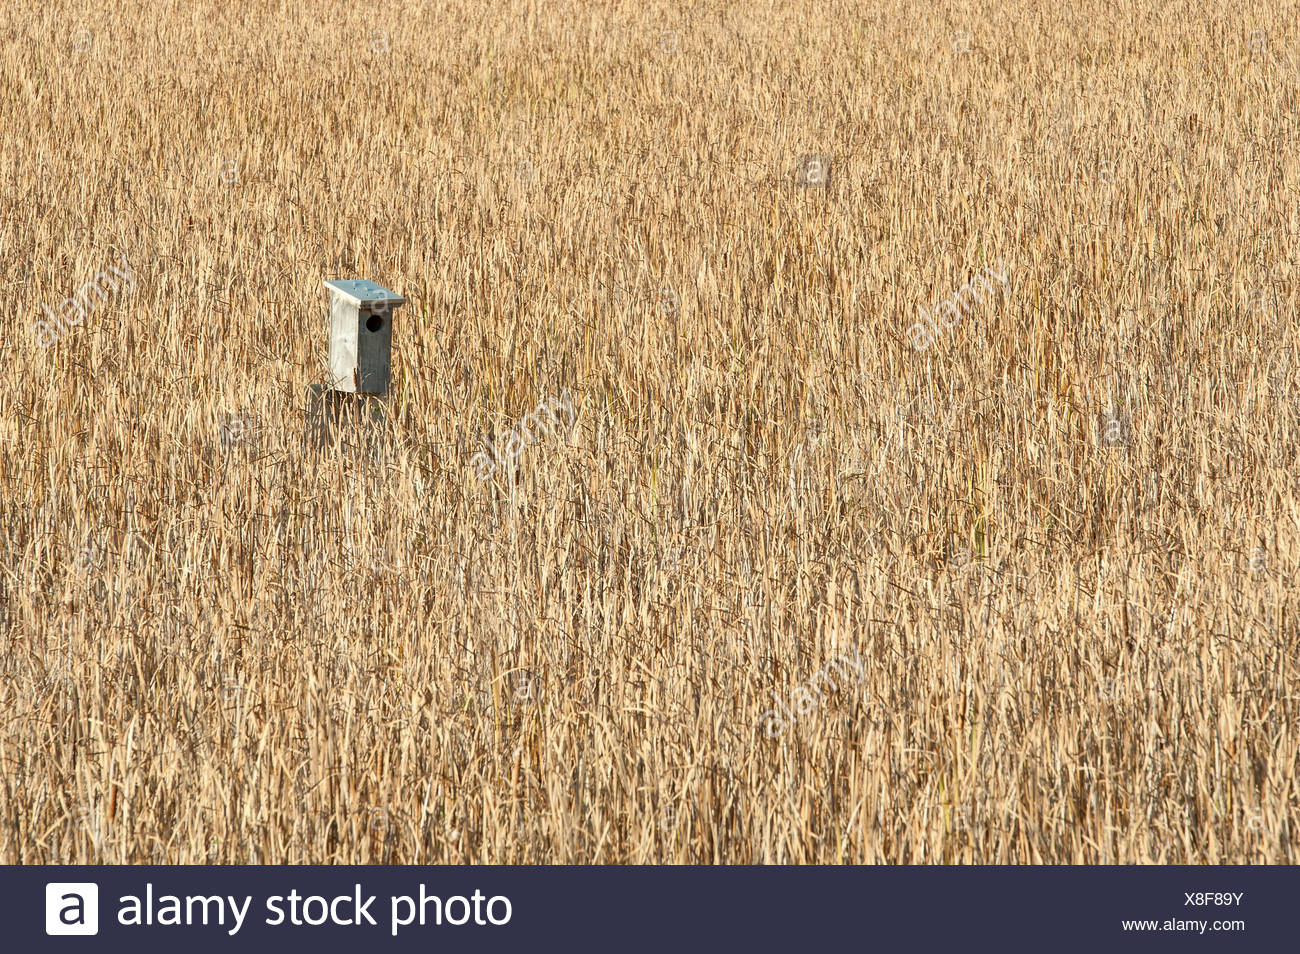 Empty nesting box in marsh, Bradford, Ontario, Canada - Stock Image